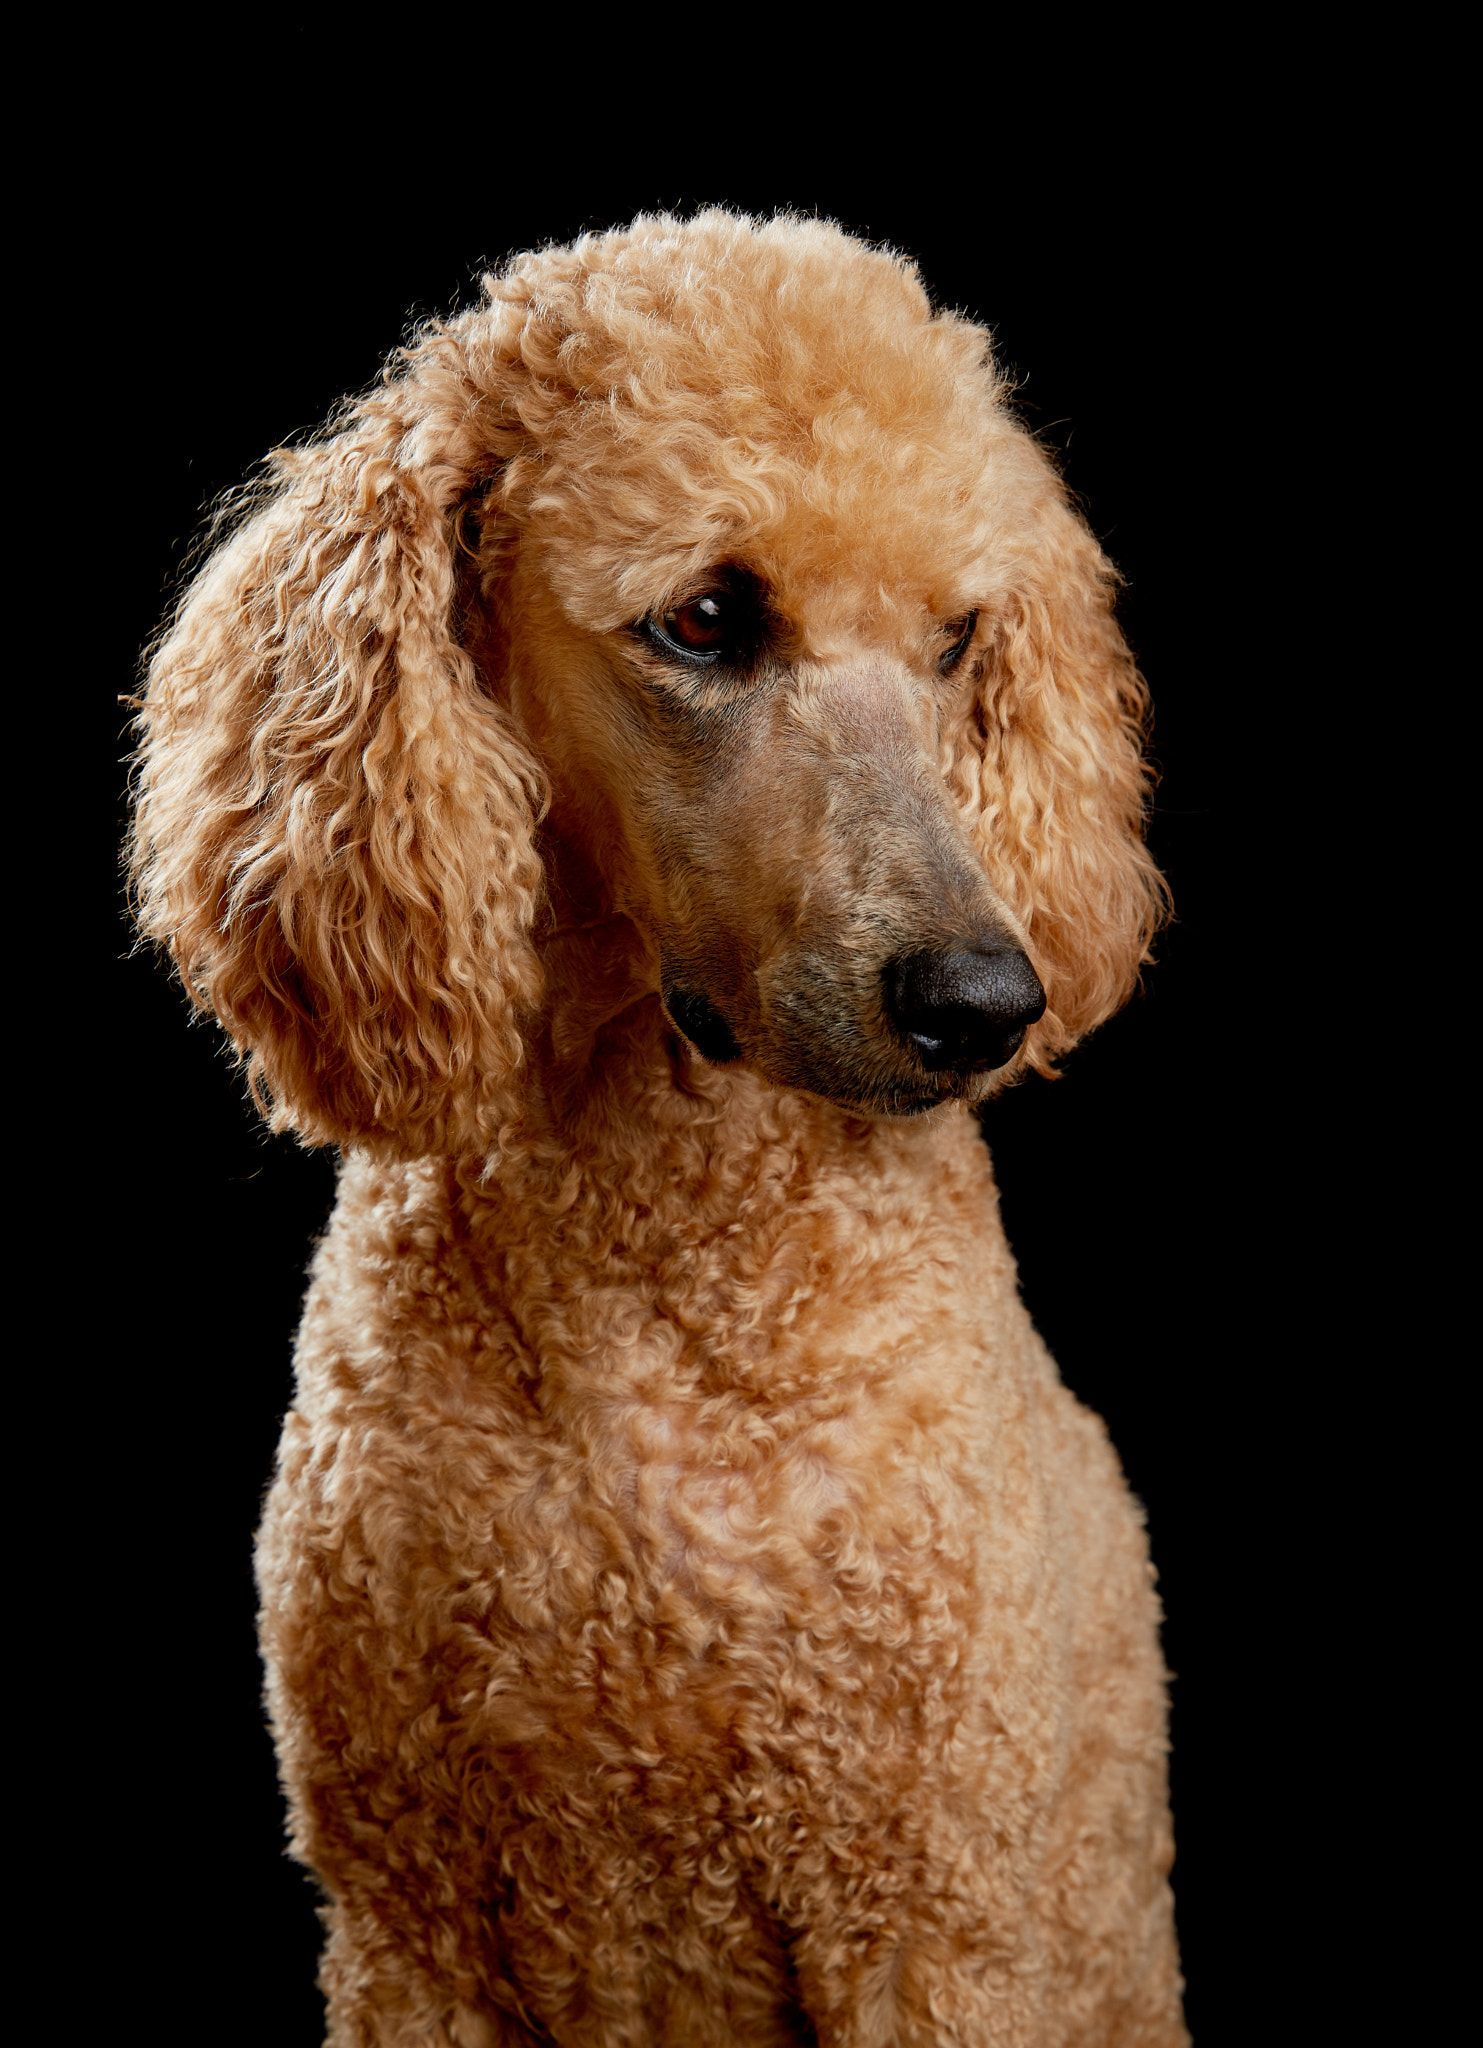 Poodle Portrait In Studio Golden Poodle Portrait In Studio With